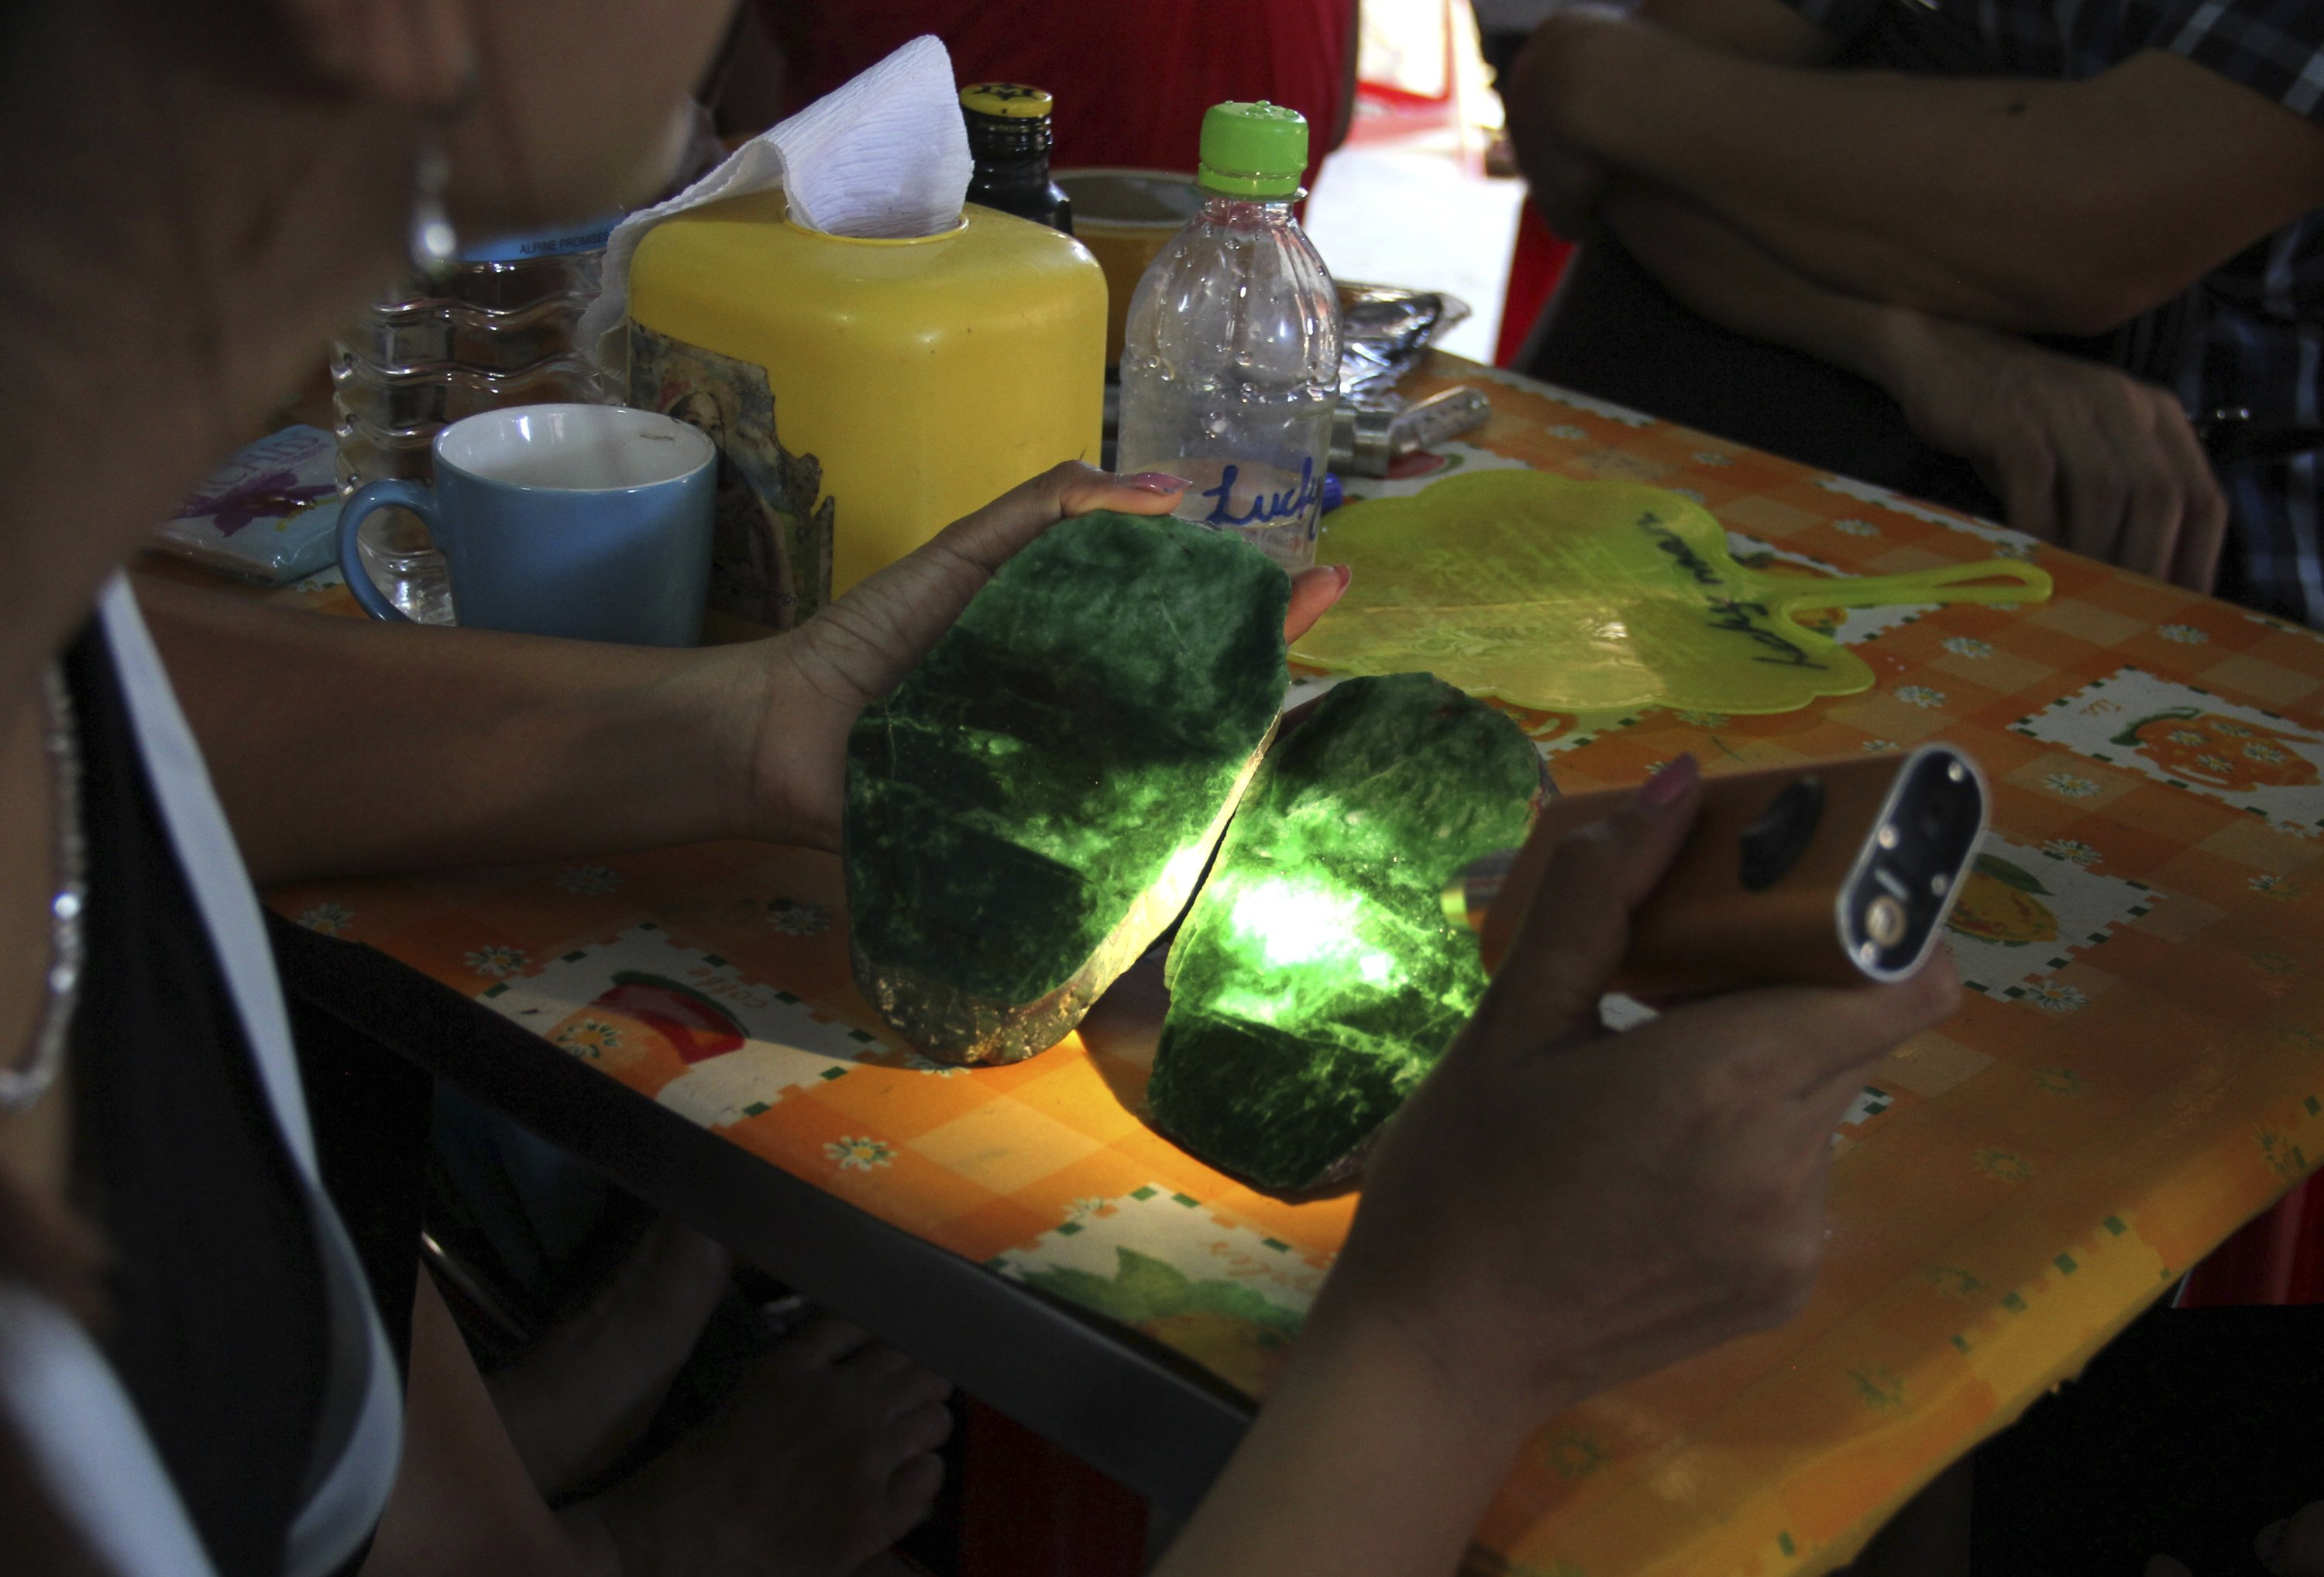 Local people examine the quality of a jade stone in the Hpakant area of Kachin state, northern Myanmar, Sept. 18, 2015. (AP Photo)